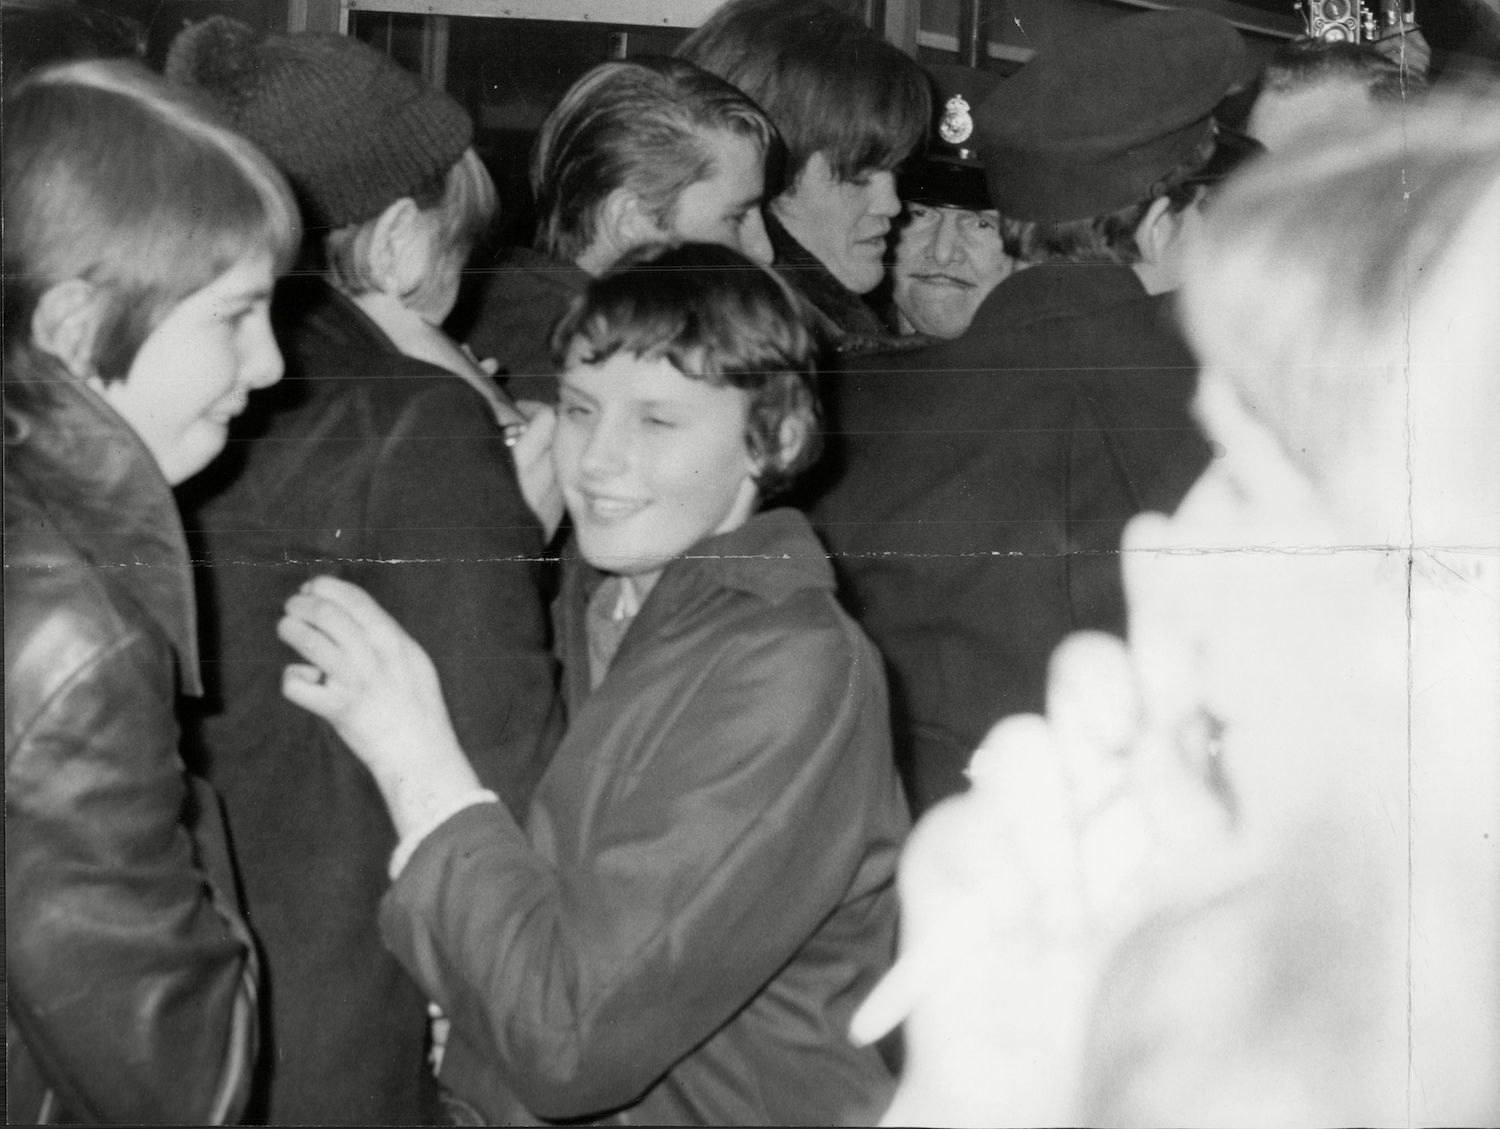 Micky Dolenz Of Pop Group The Monkees Mobbed At Heathrow Airport Micky Dolenz Of Pop Group The Monkees Mobbed At Heathrow Airport